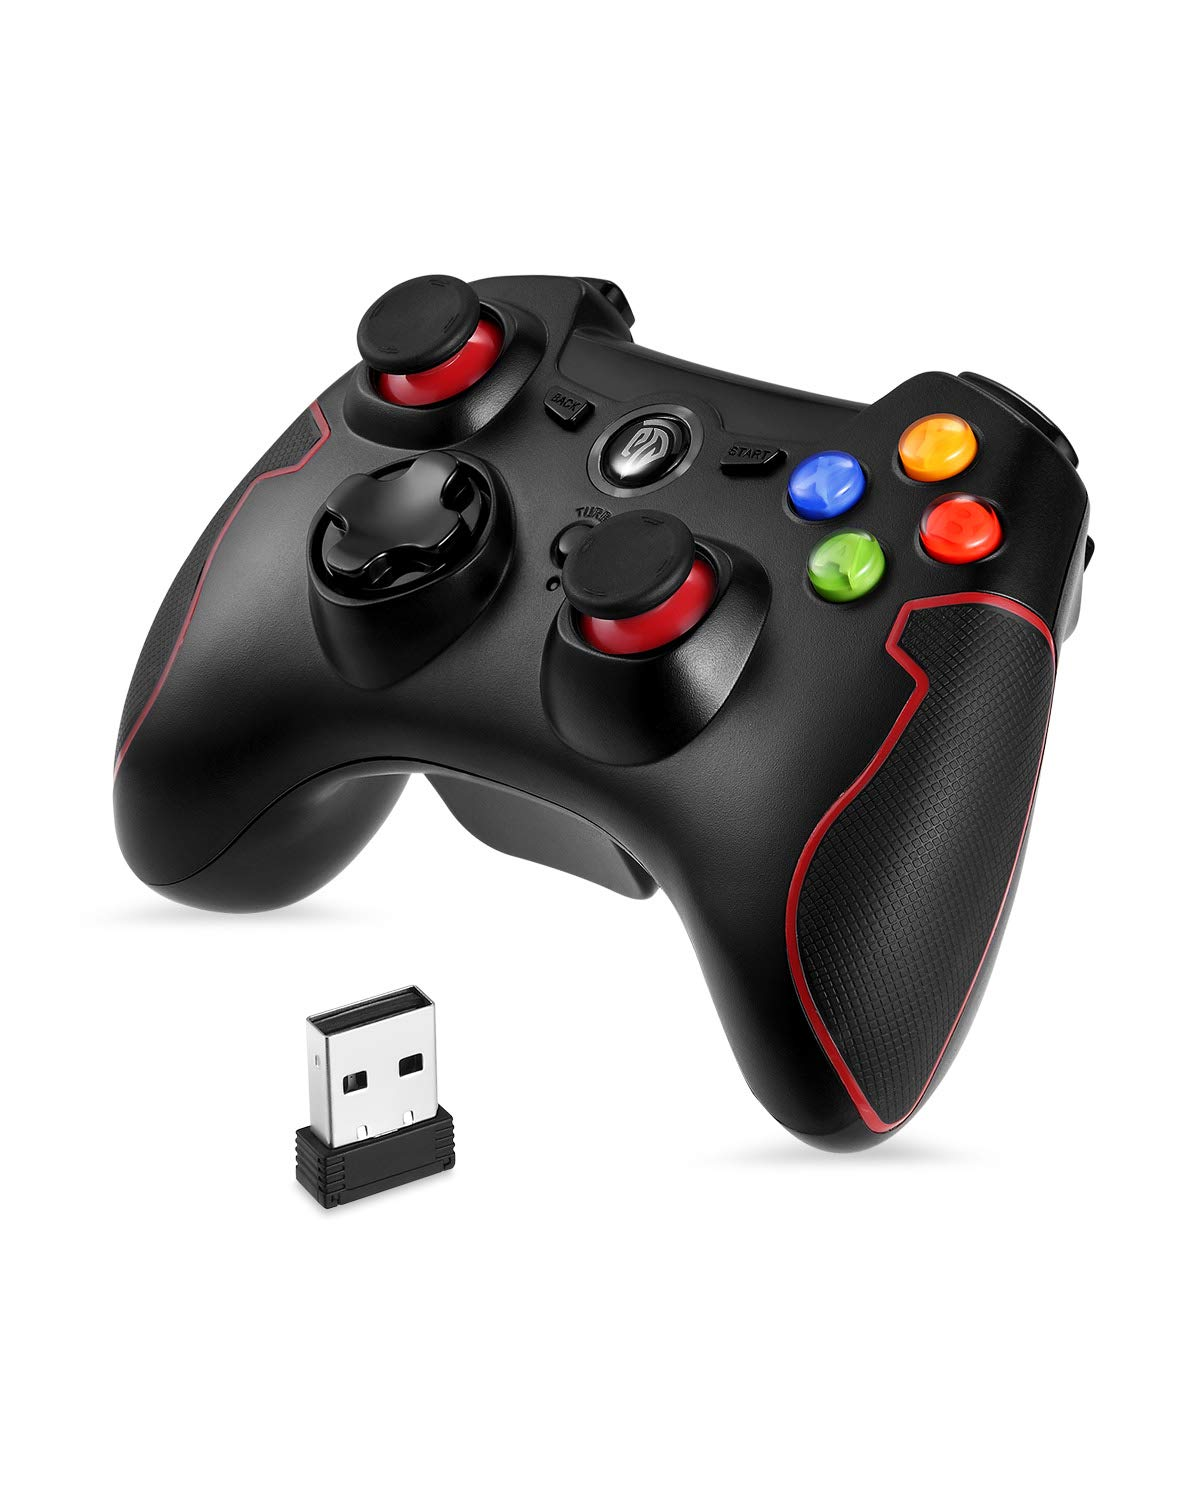 EasySMX PC PS3 Gaming Controller, Wireless 2.4G Gamepads Vibration Fire Button Support PC, PS3, Android, Vista, TV Box Portable Gaming Joystick Handle (Black Red)